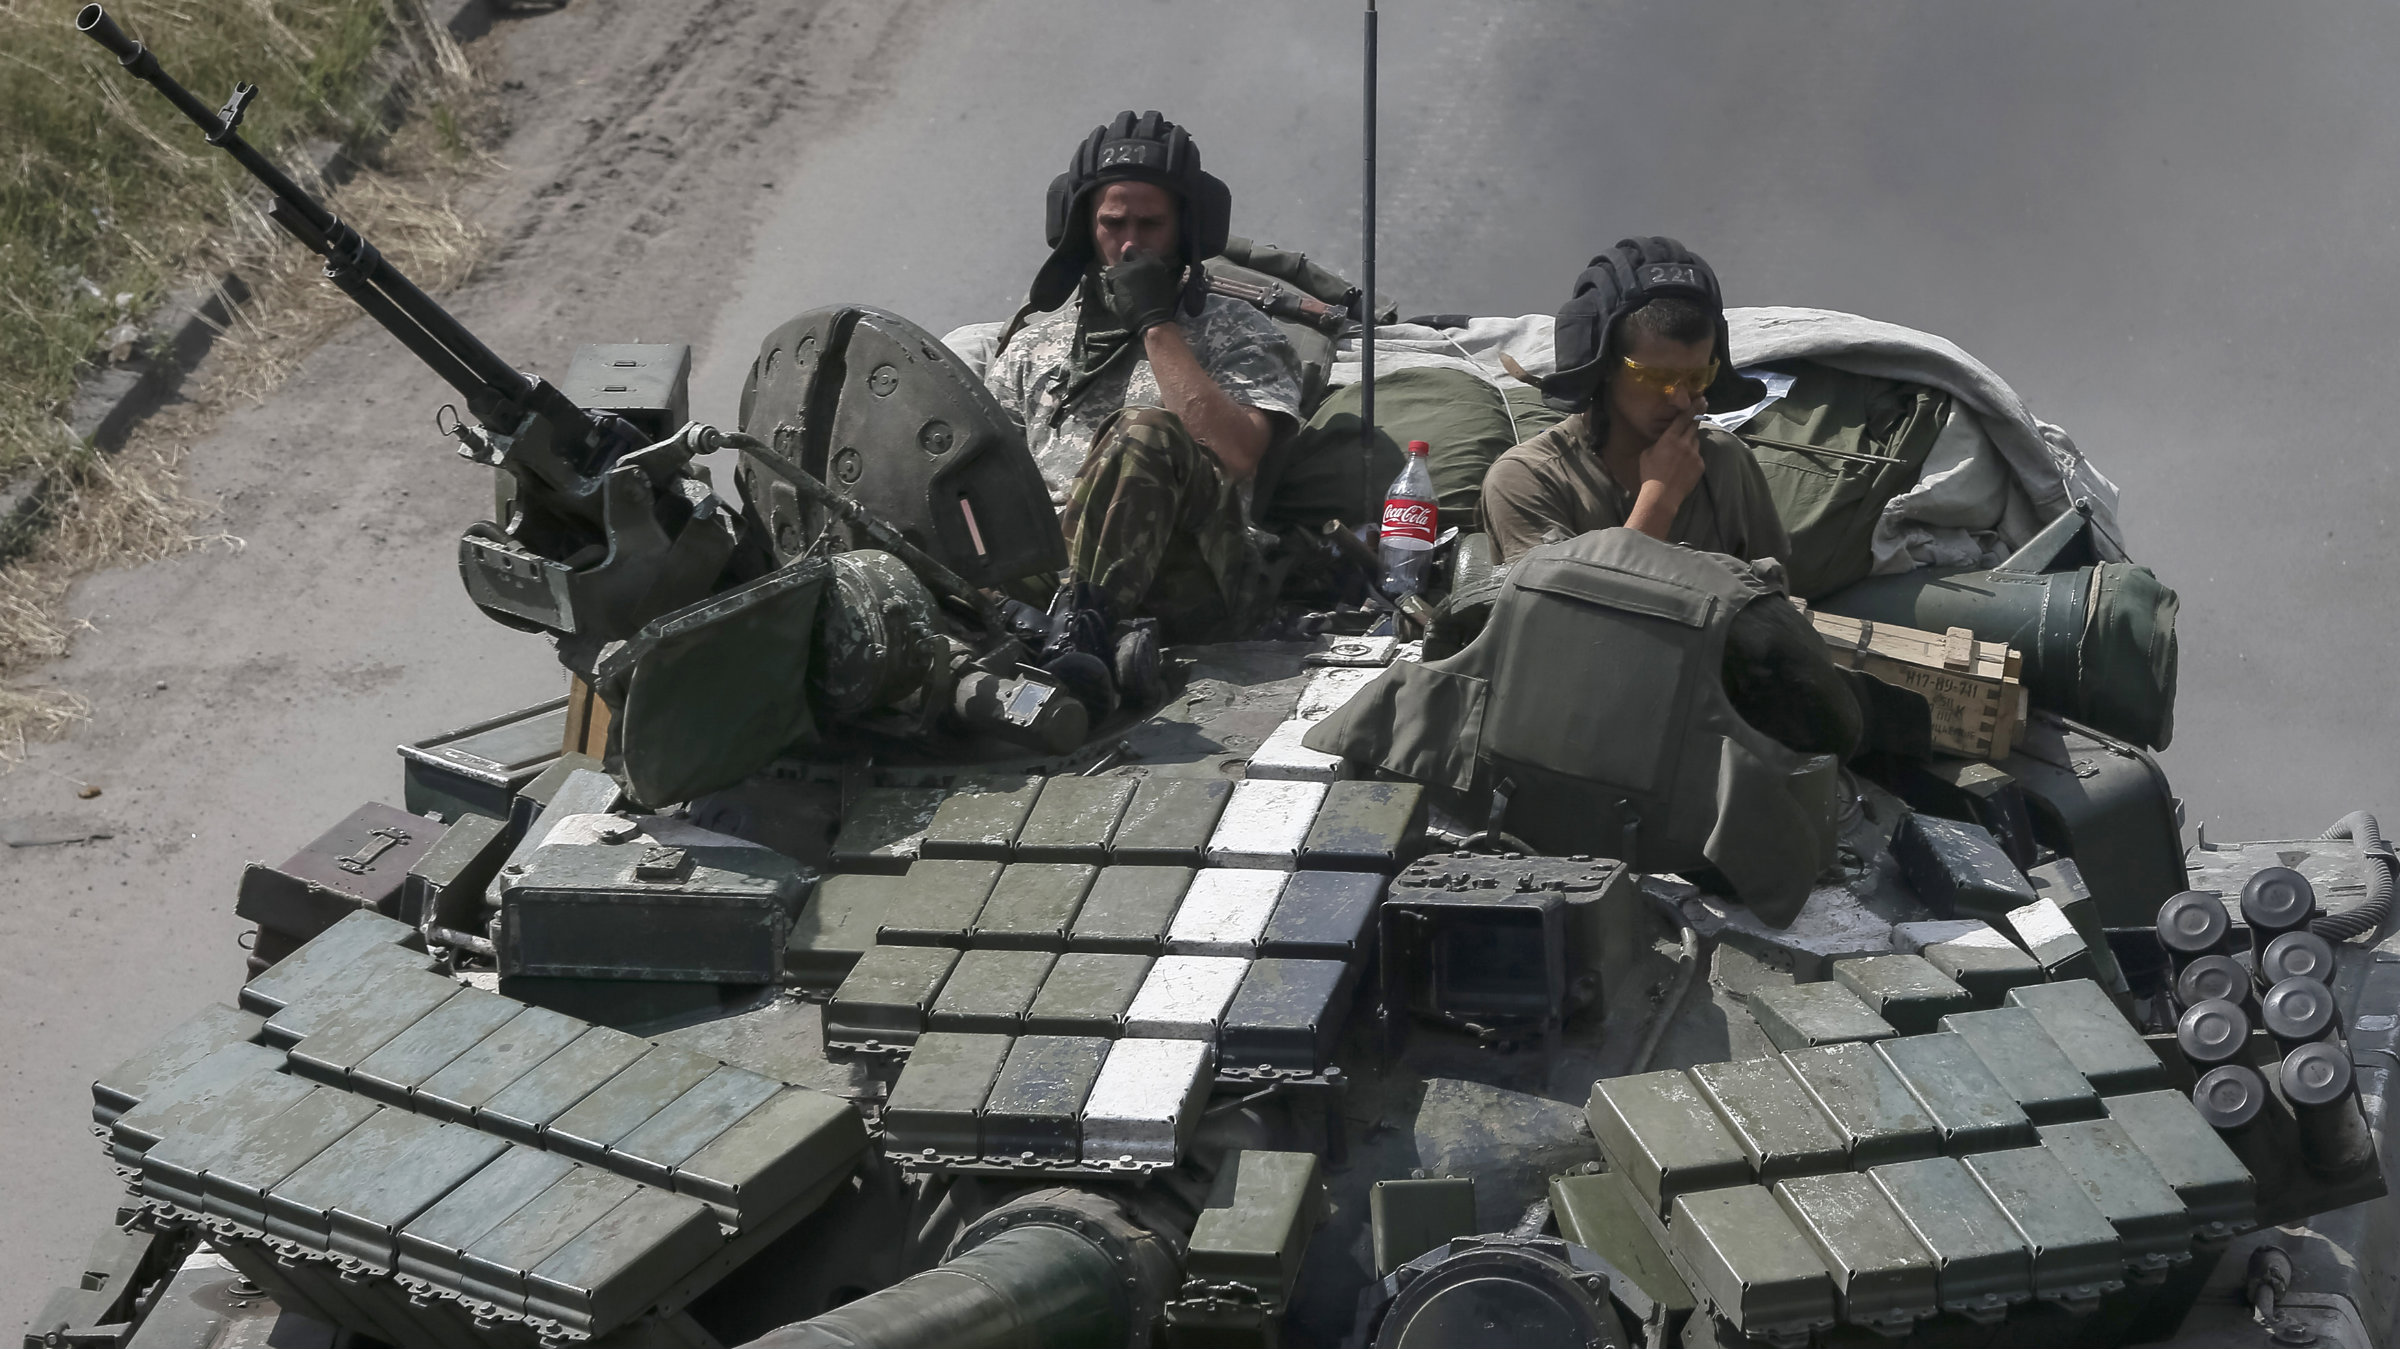 Ukranian troops trying to seize back the city of Donetsk from separatists.